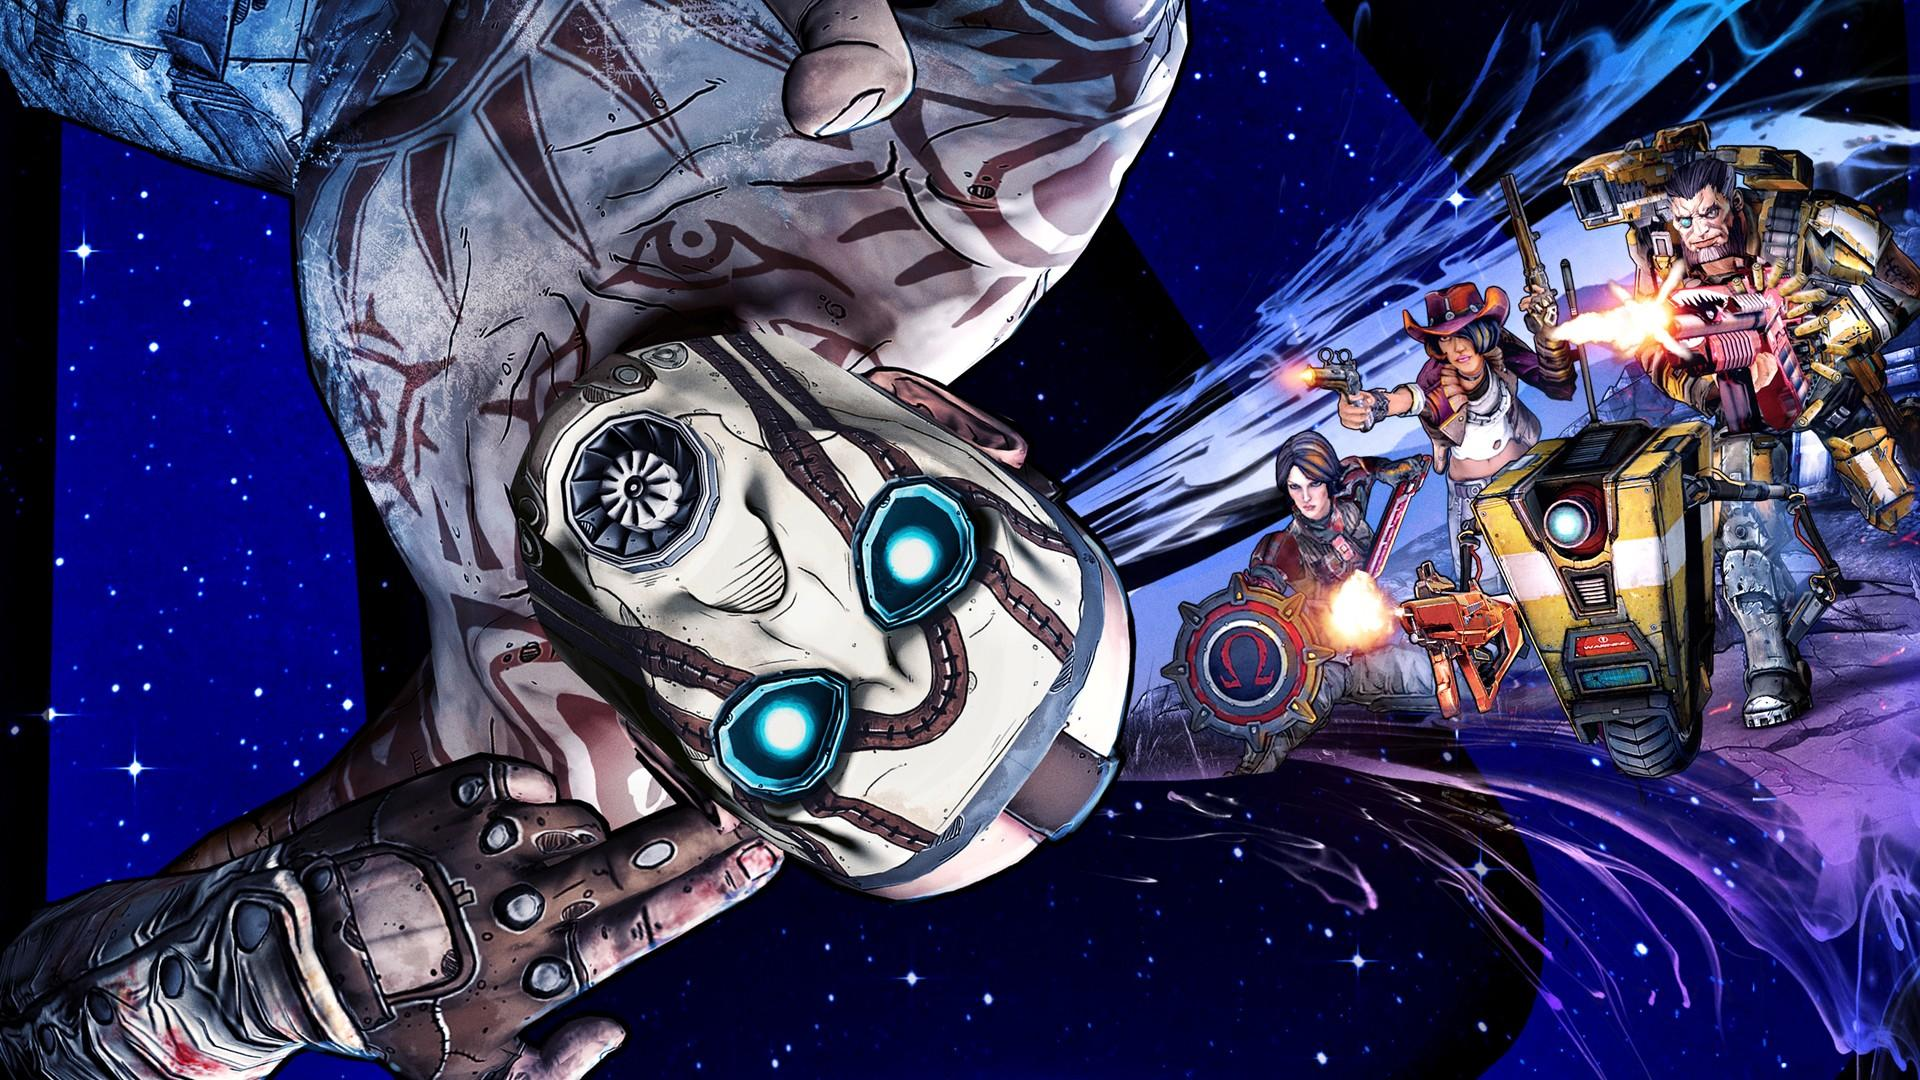 Borderlands 3 Wallpapers Wallpaper Cave